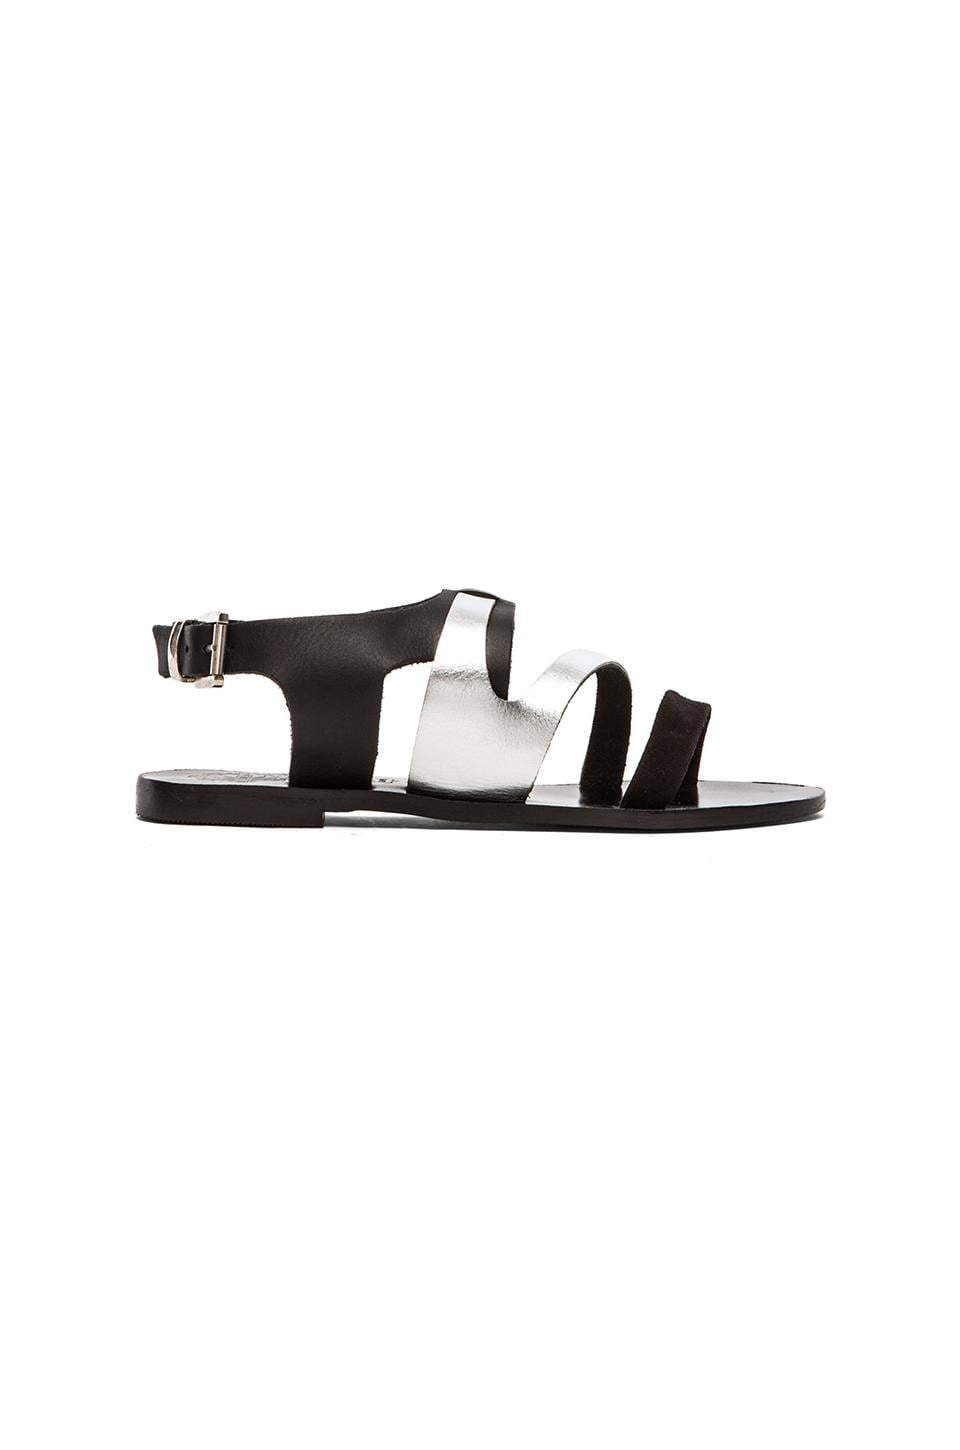 Sol Sana Asha Sandal in Black & Metallic